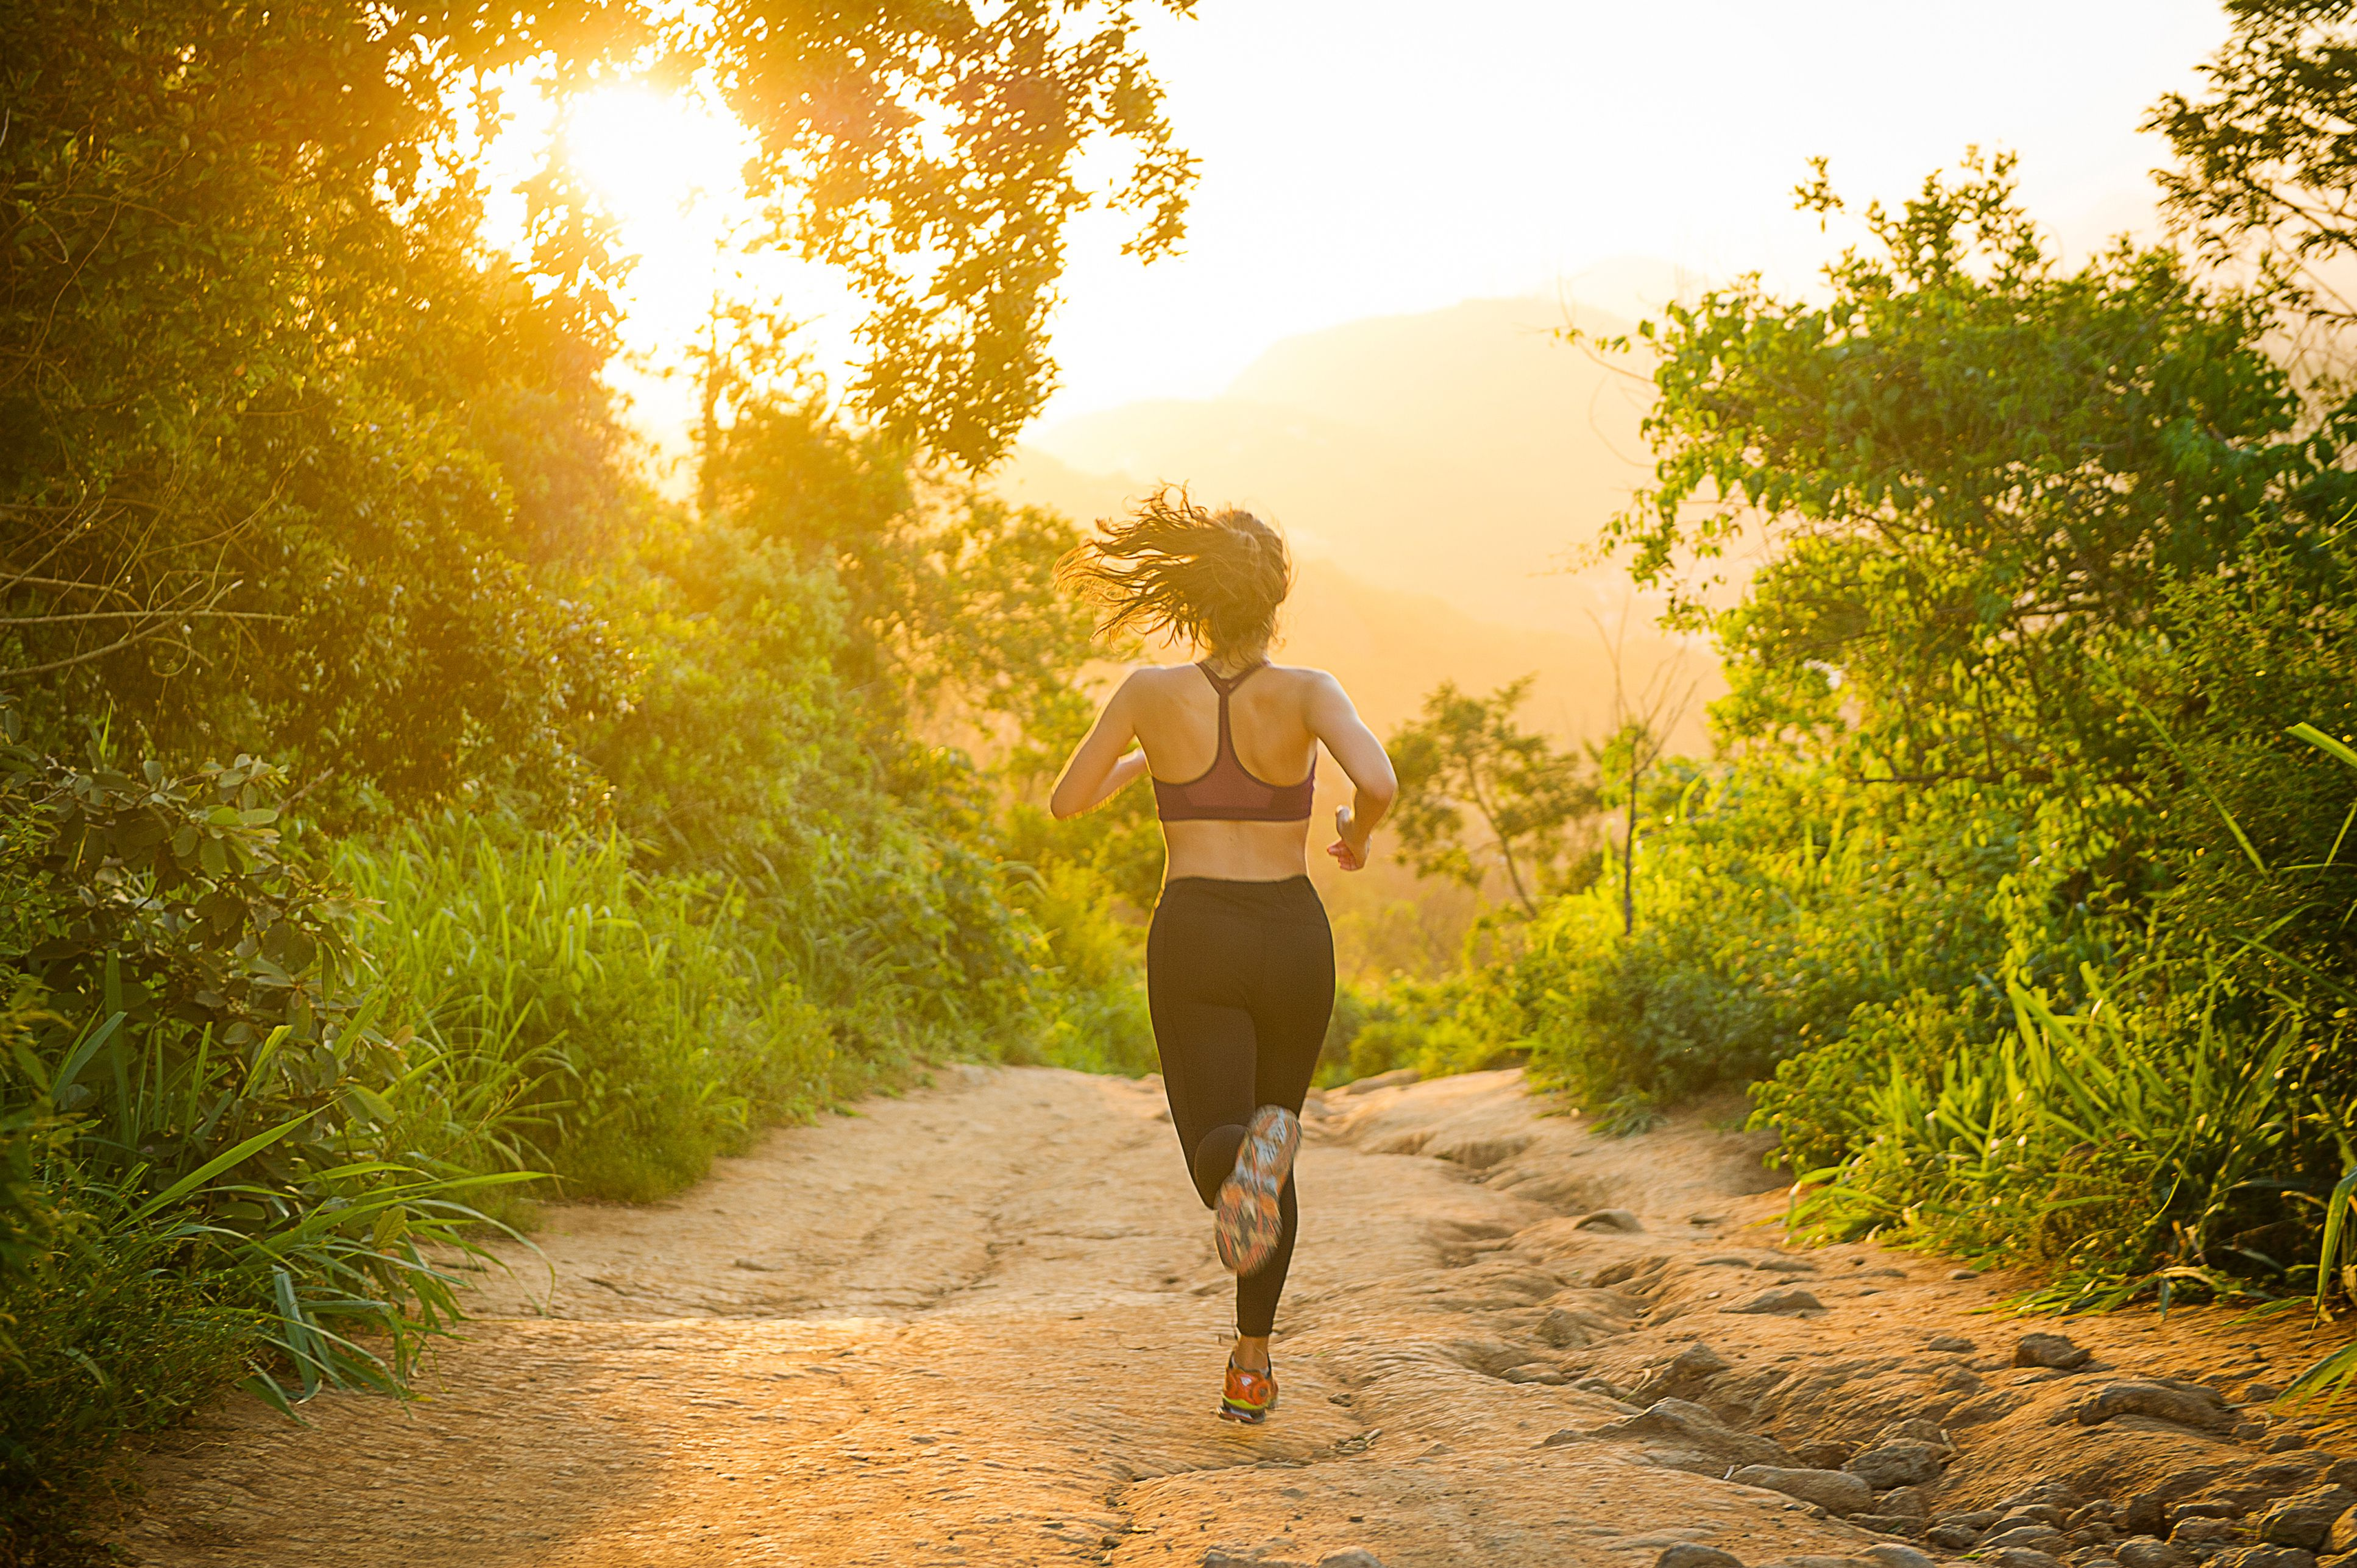 How to Choose the Best Sports Bra for Running